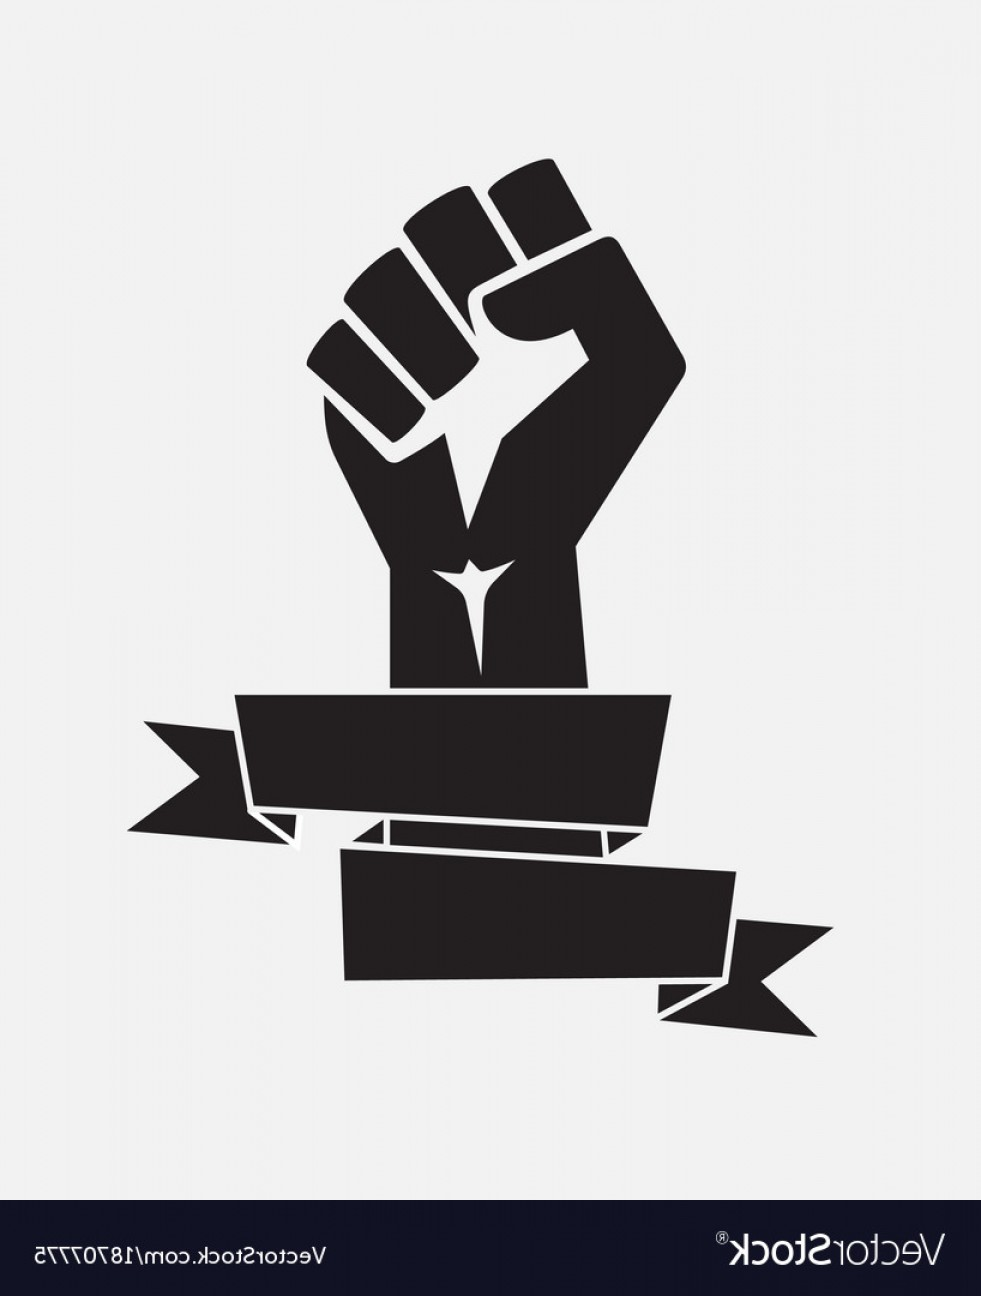 Black Power Fist Vector: Raised Fist Poster Black With Ribbon Isolated Vector